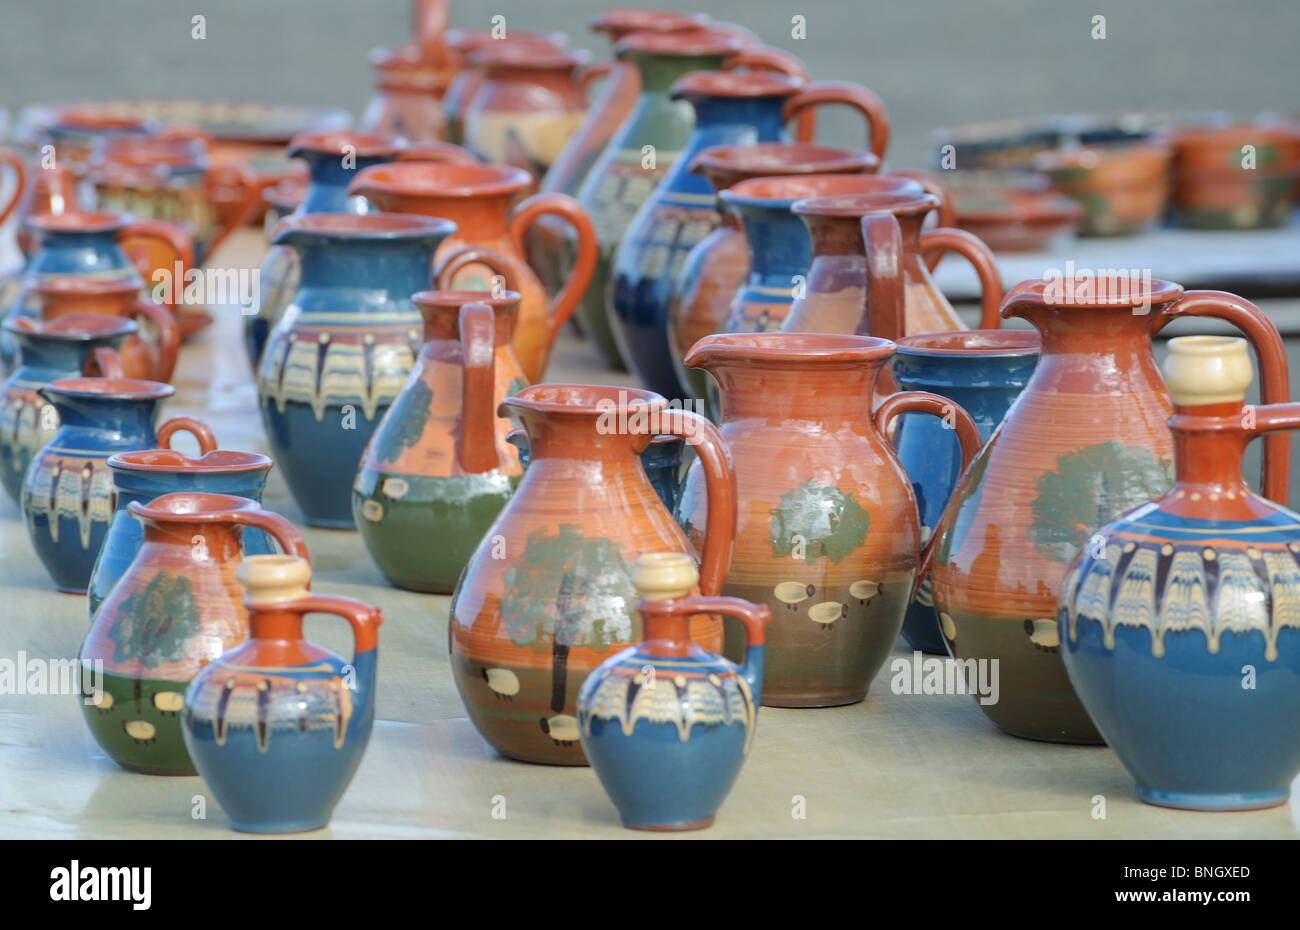 Terracotta Souvenirs from Cyprus pottery Paphos Pafos Cyprus earth tones gifts - Stock Image